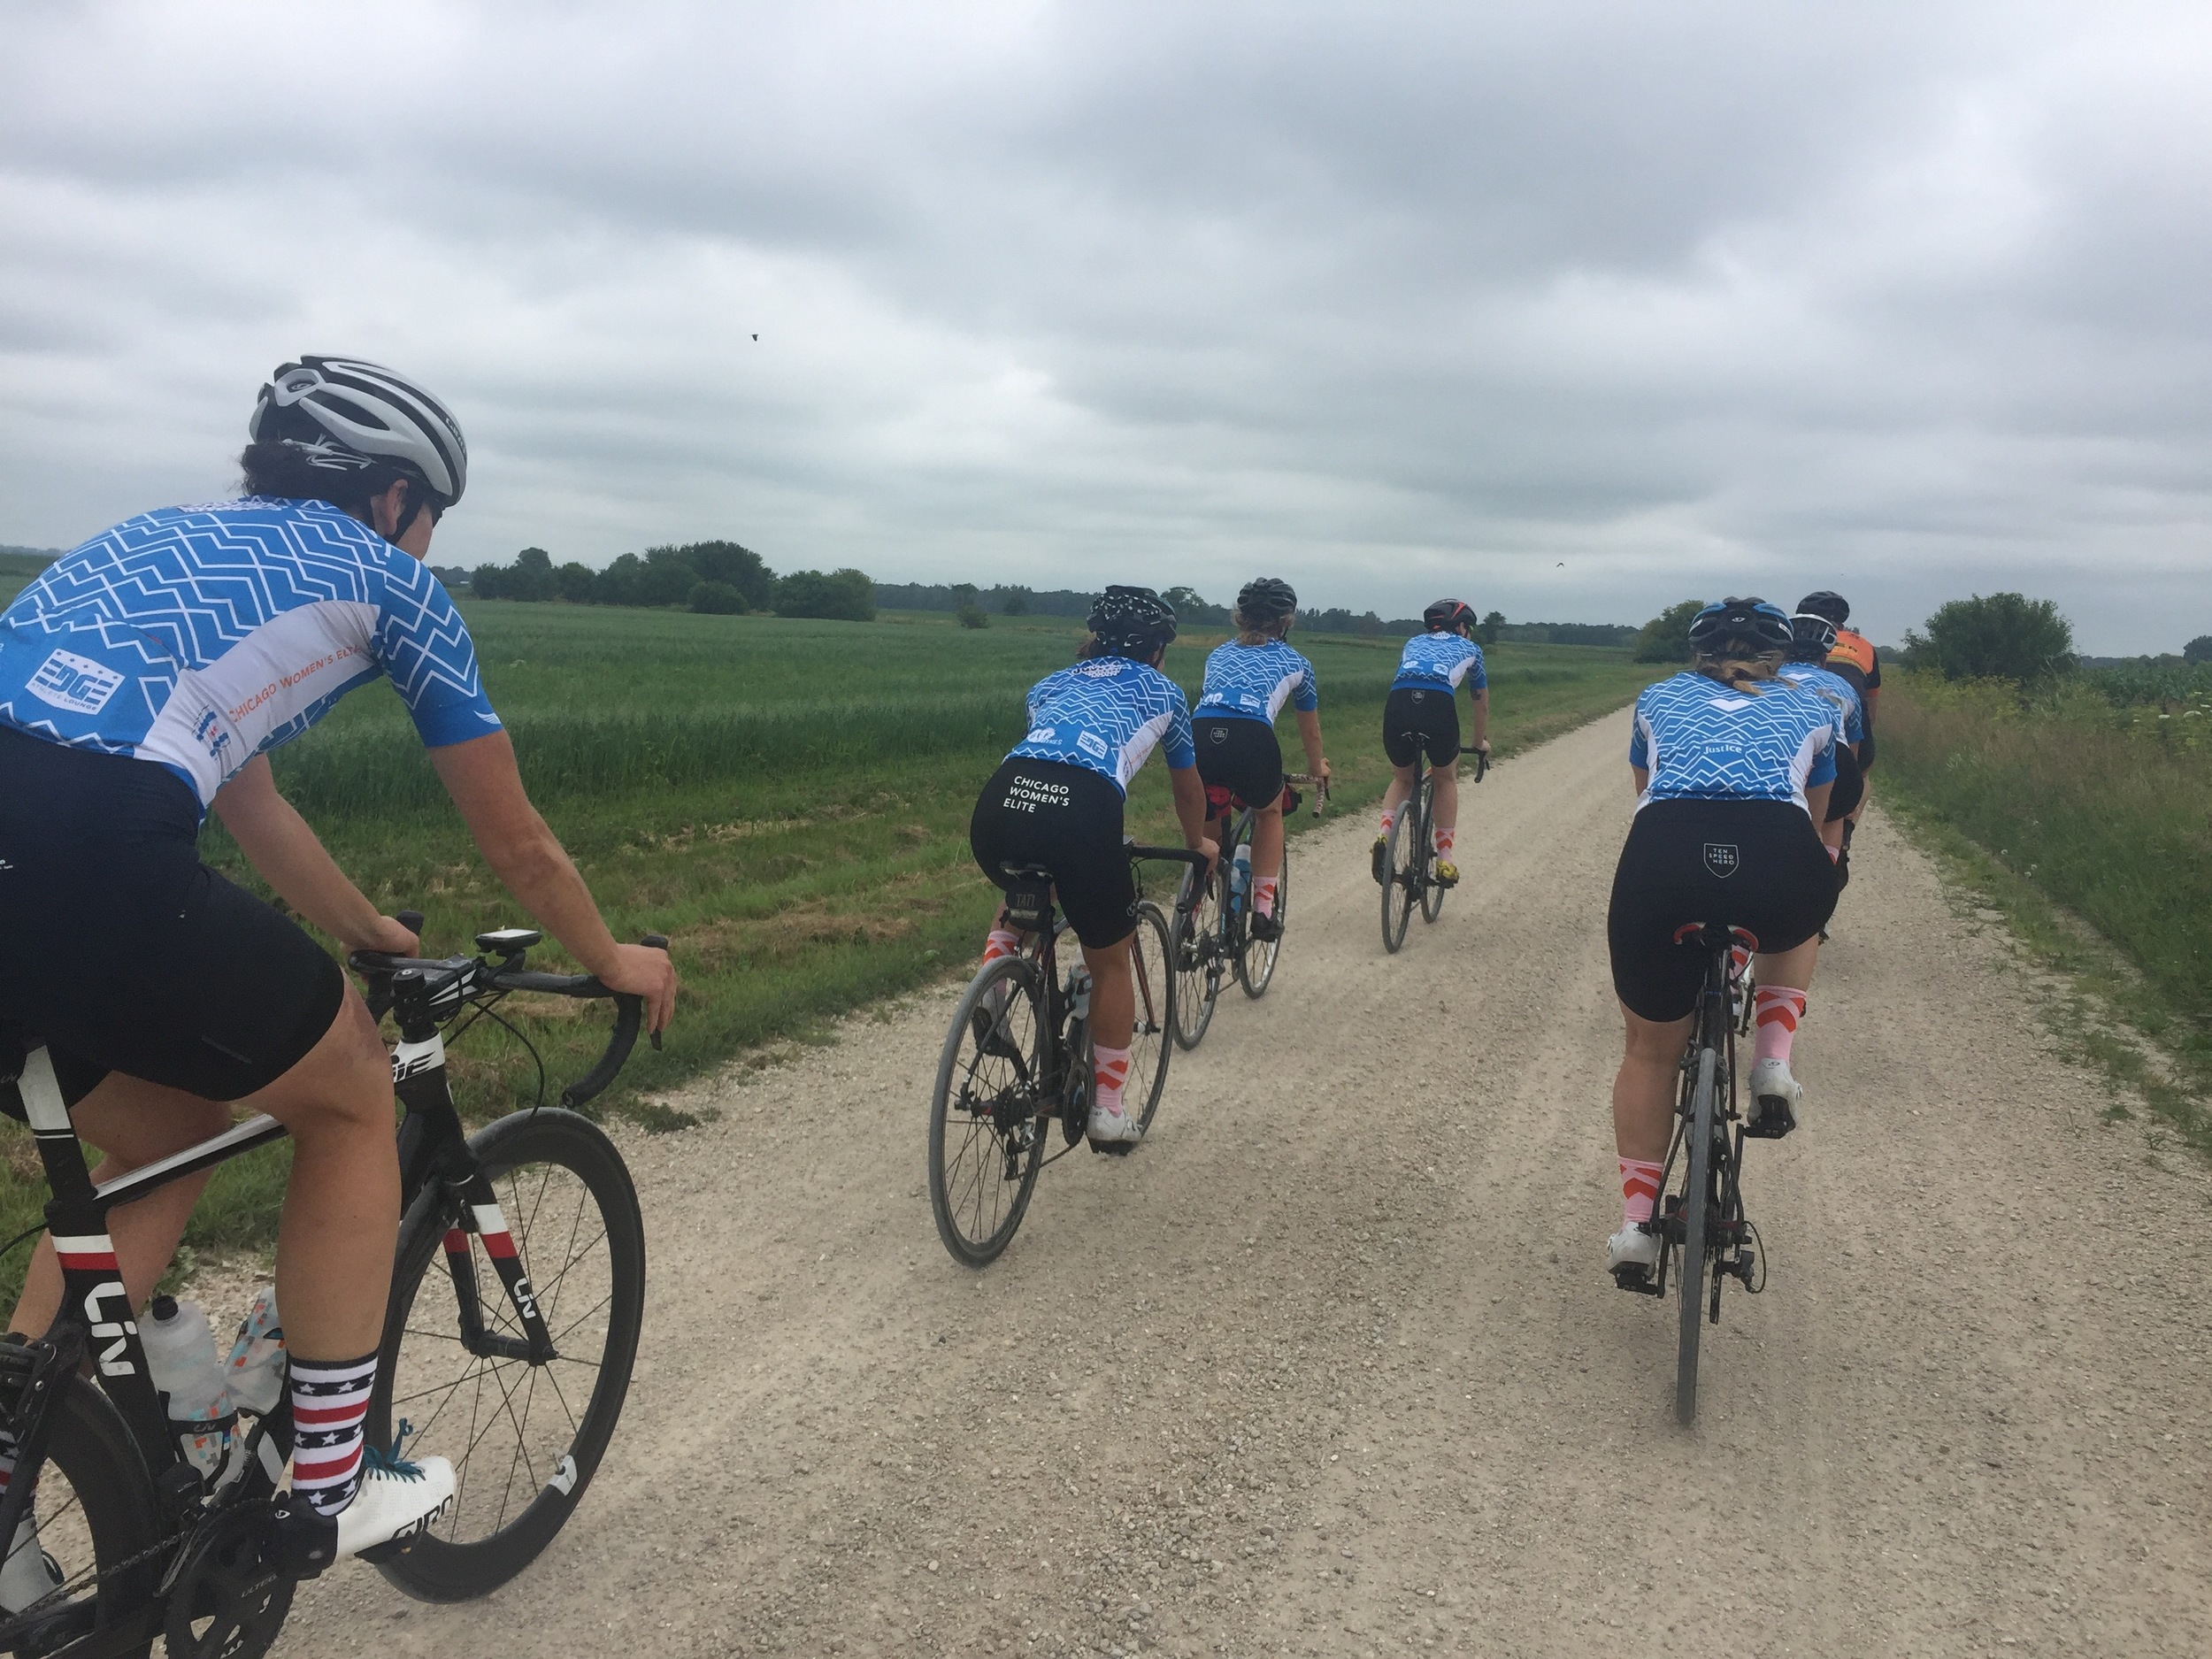 CWEC Riders on a section of the course